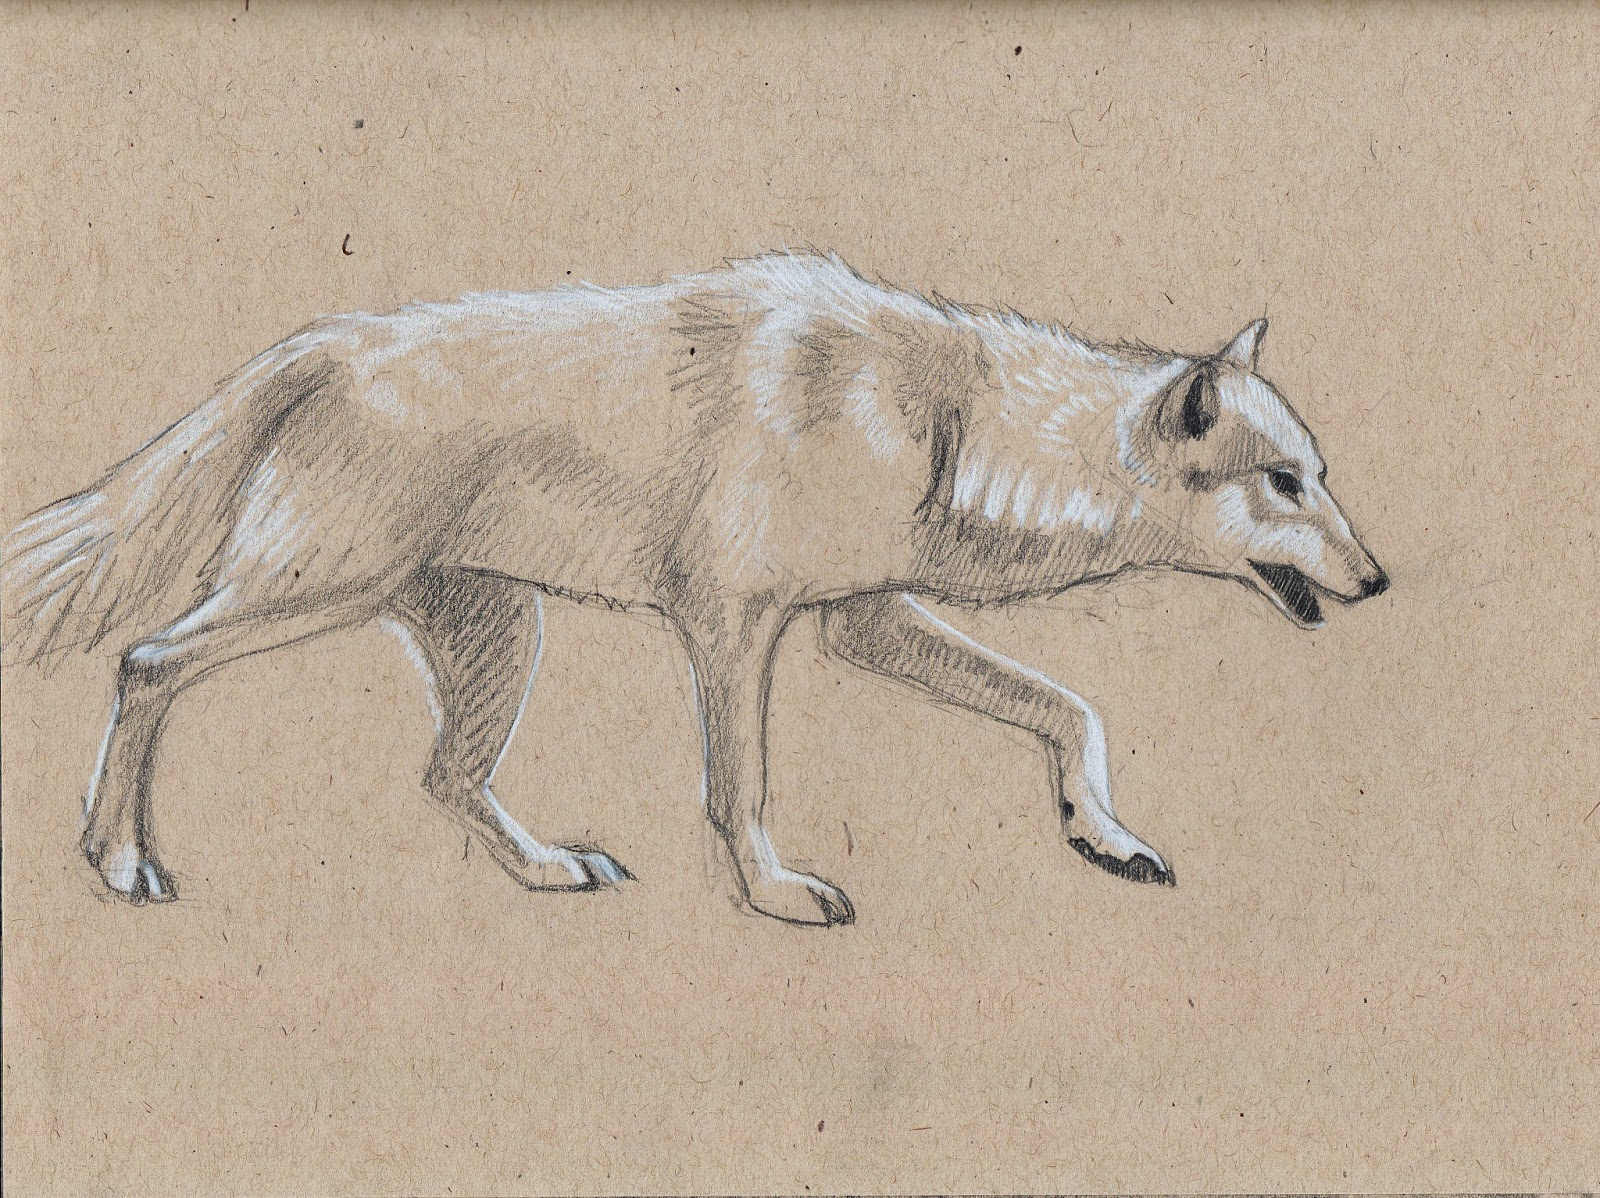 grey wolf, drawing